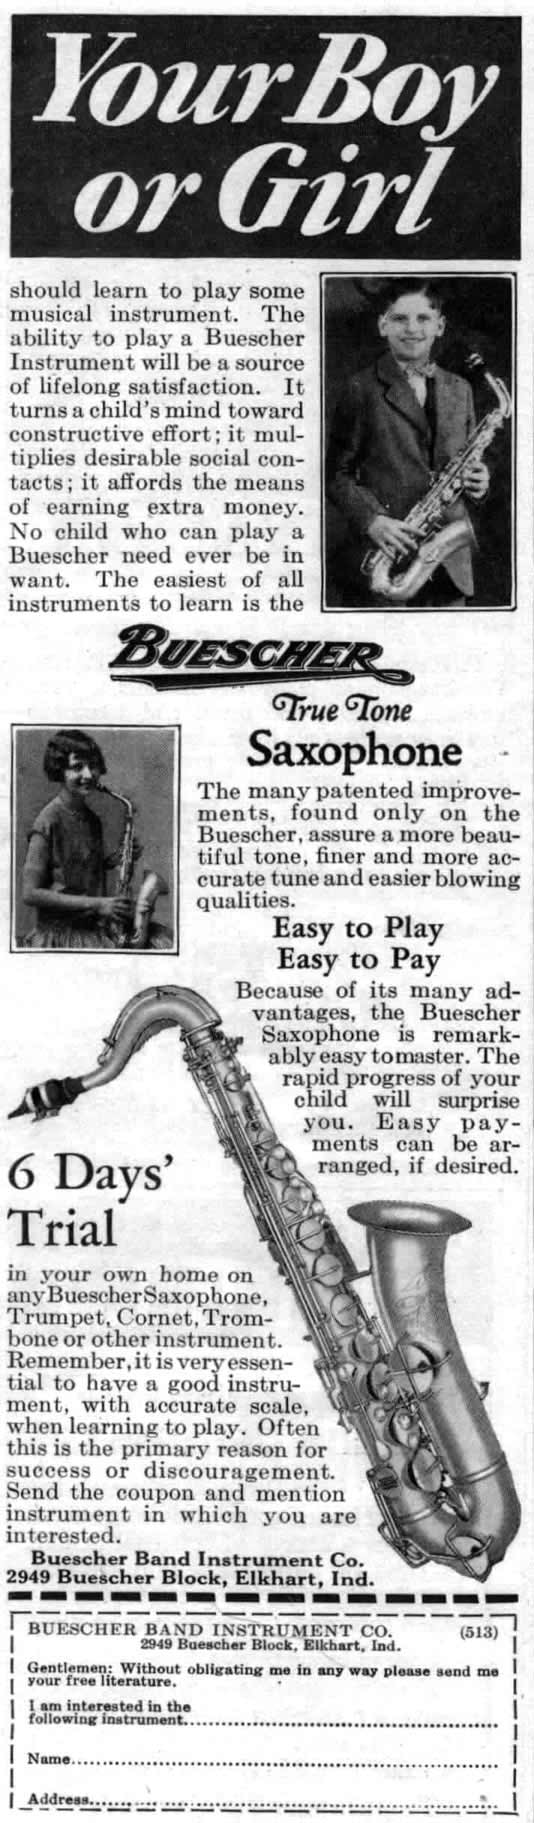 vintage ad, 1929 Buescher True Tone saxophone advertisement, young boy, young girl, c melody saxophone